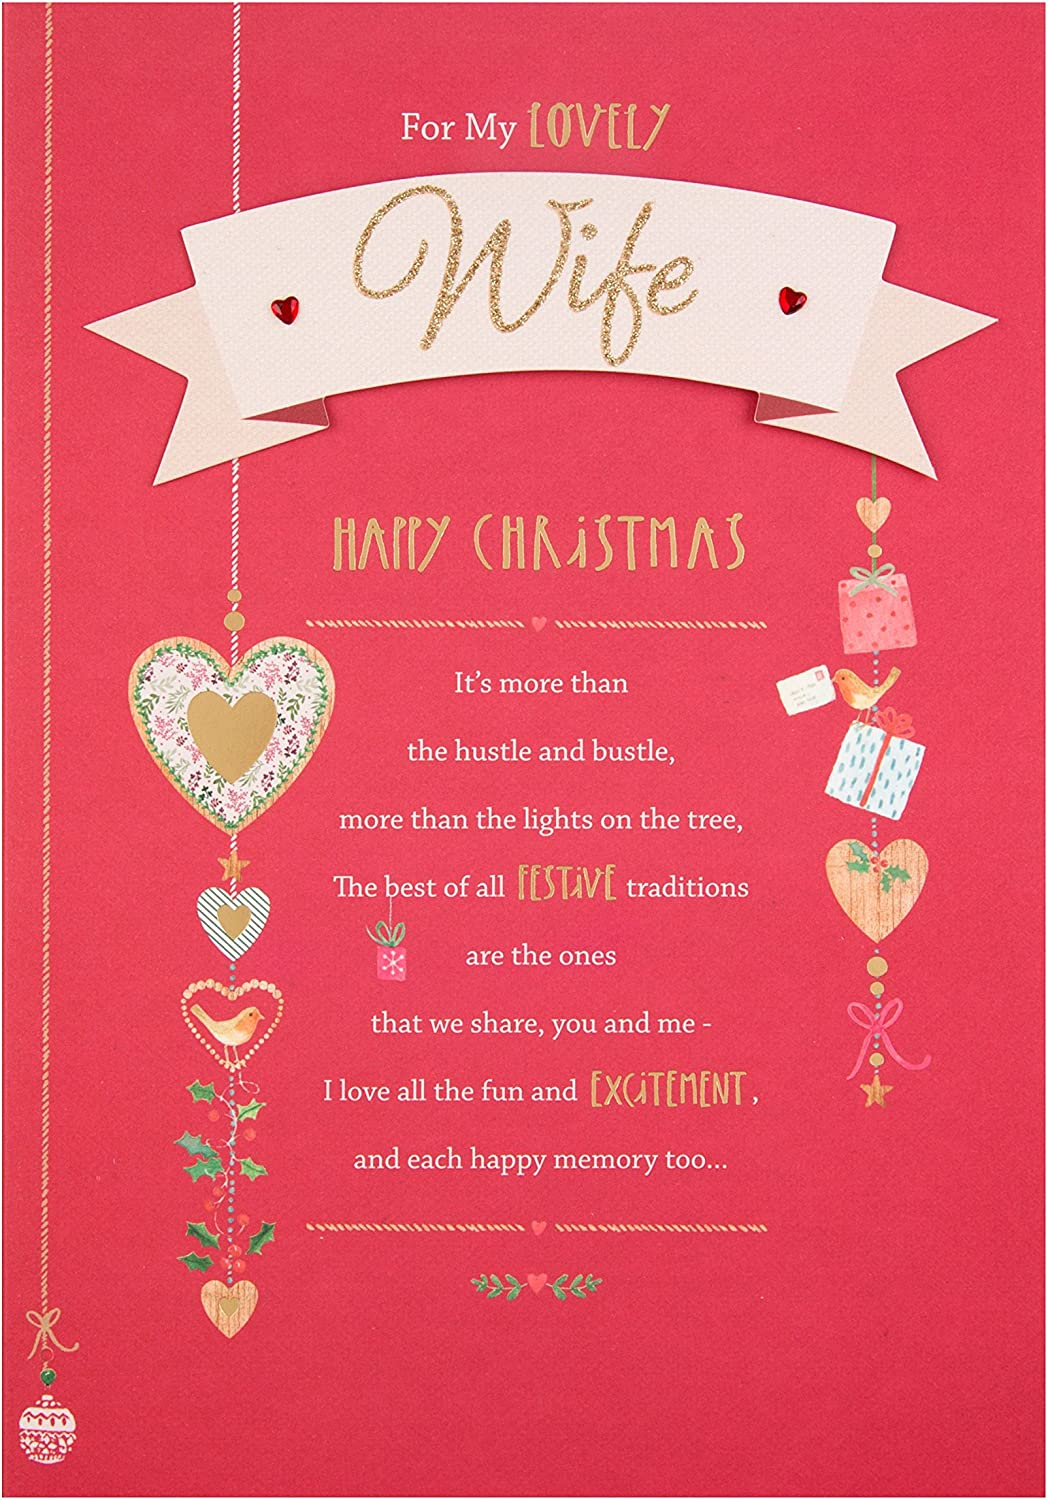 Love You Lots With All My Heart Hallmark Christmas Card Wife